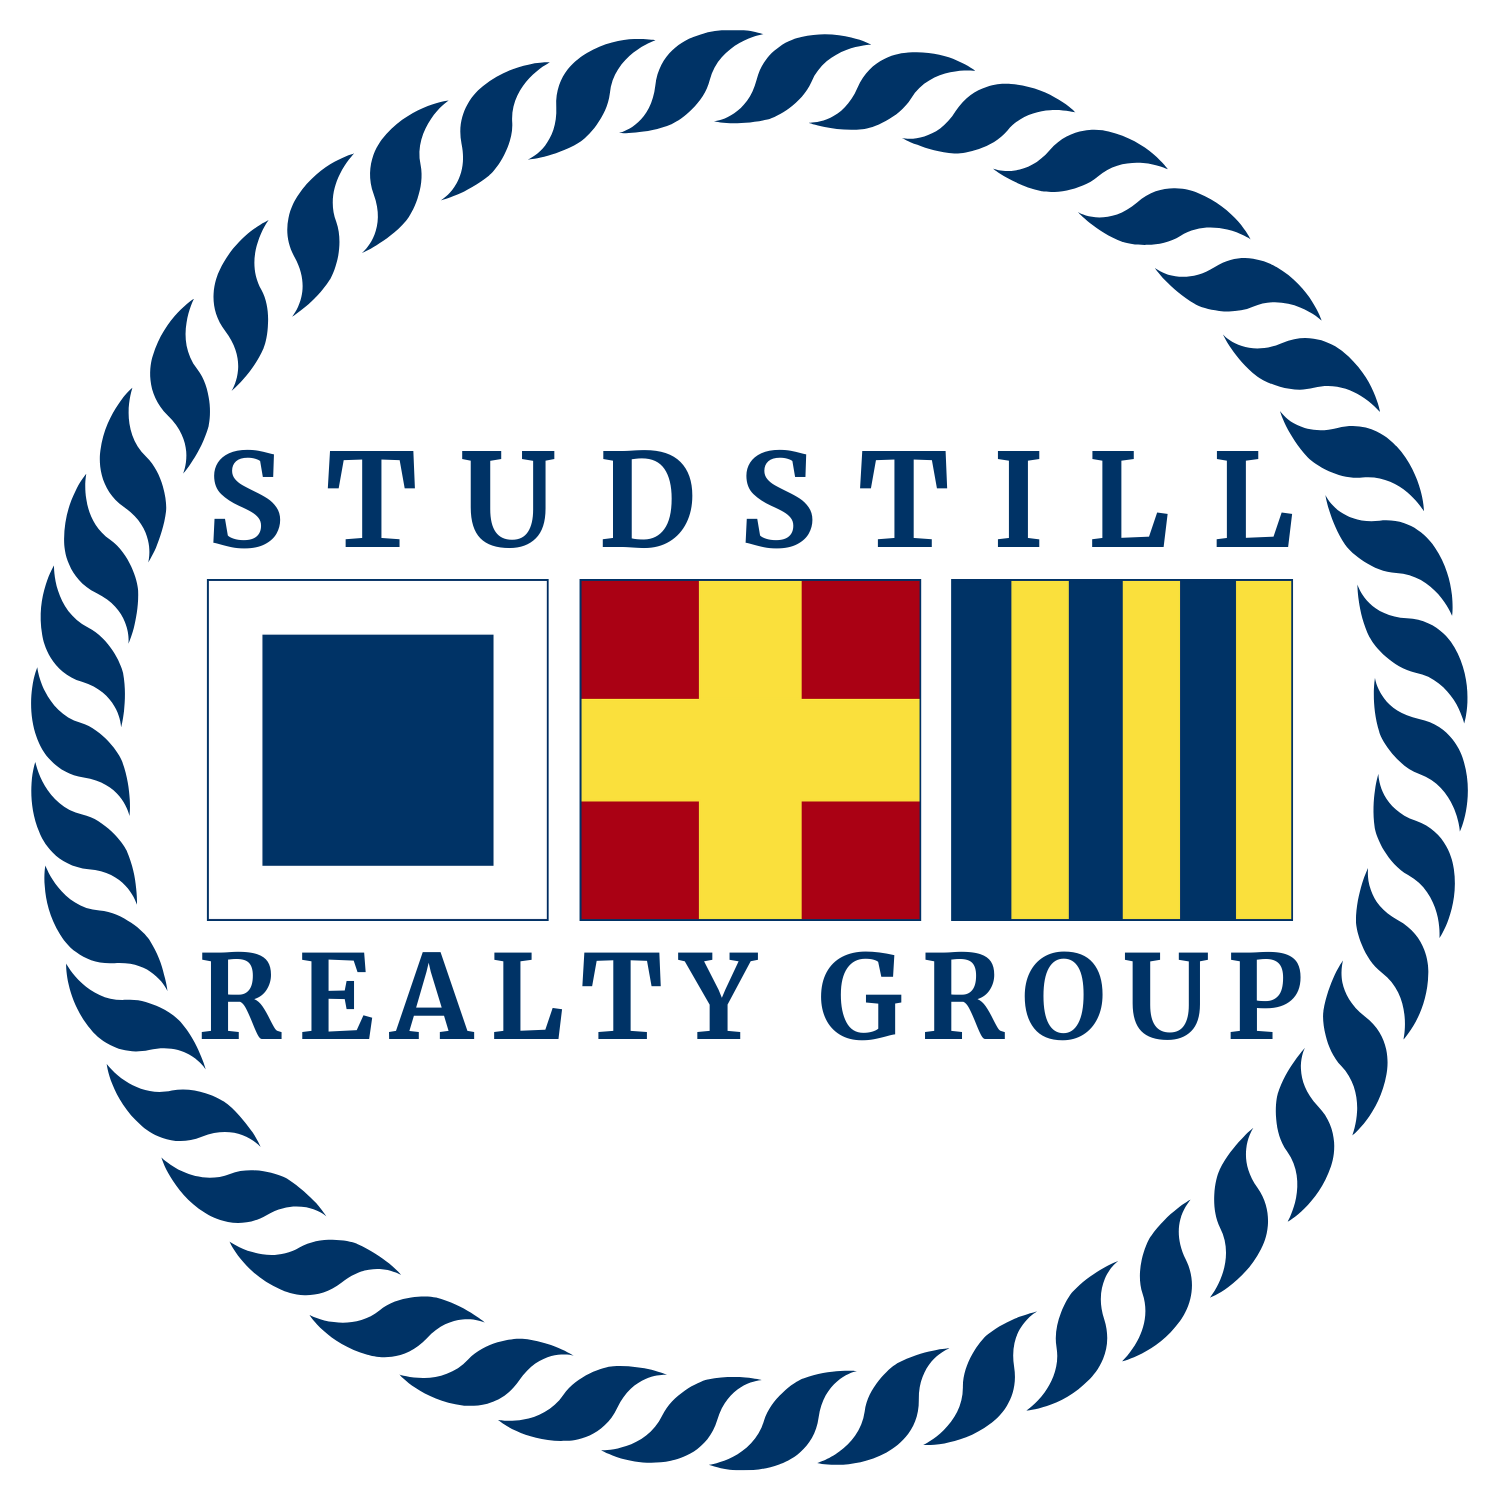 Studstill Realty Group, LLC